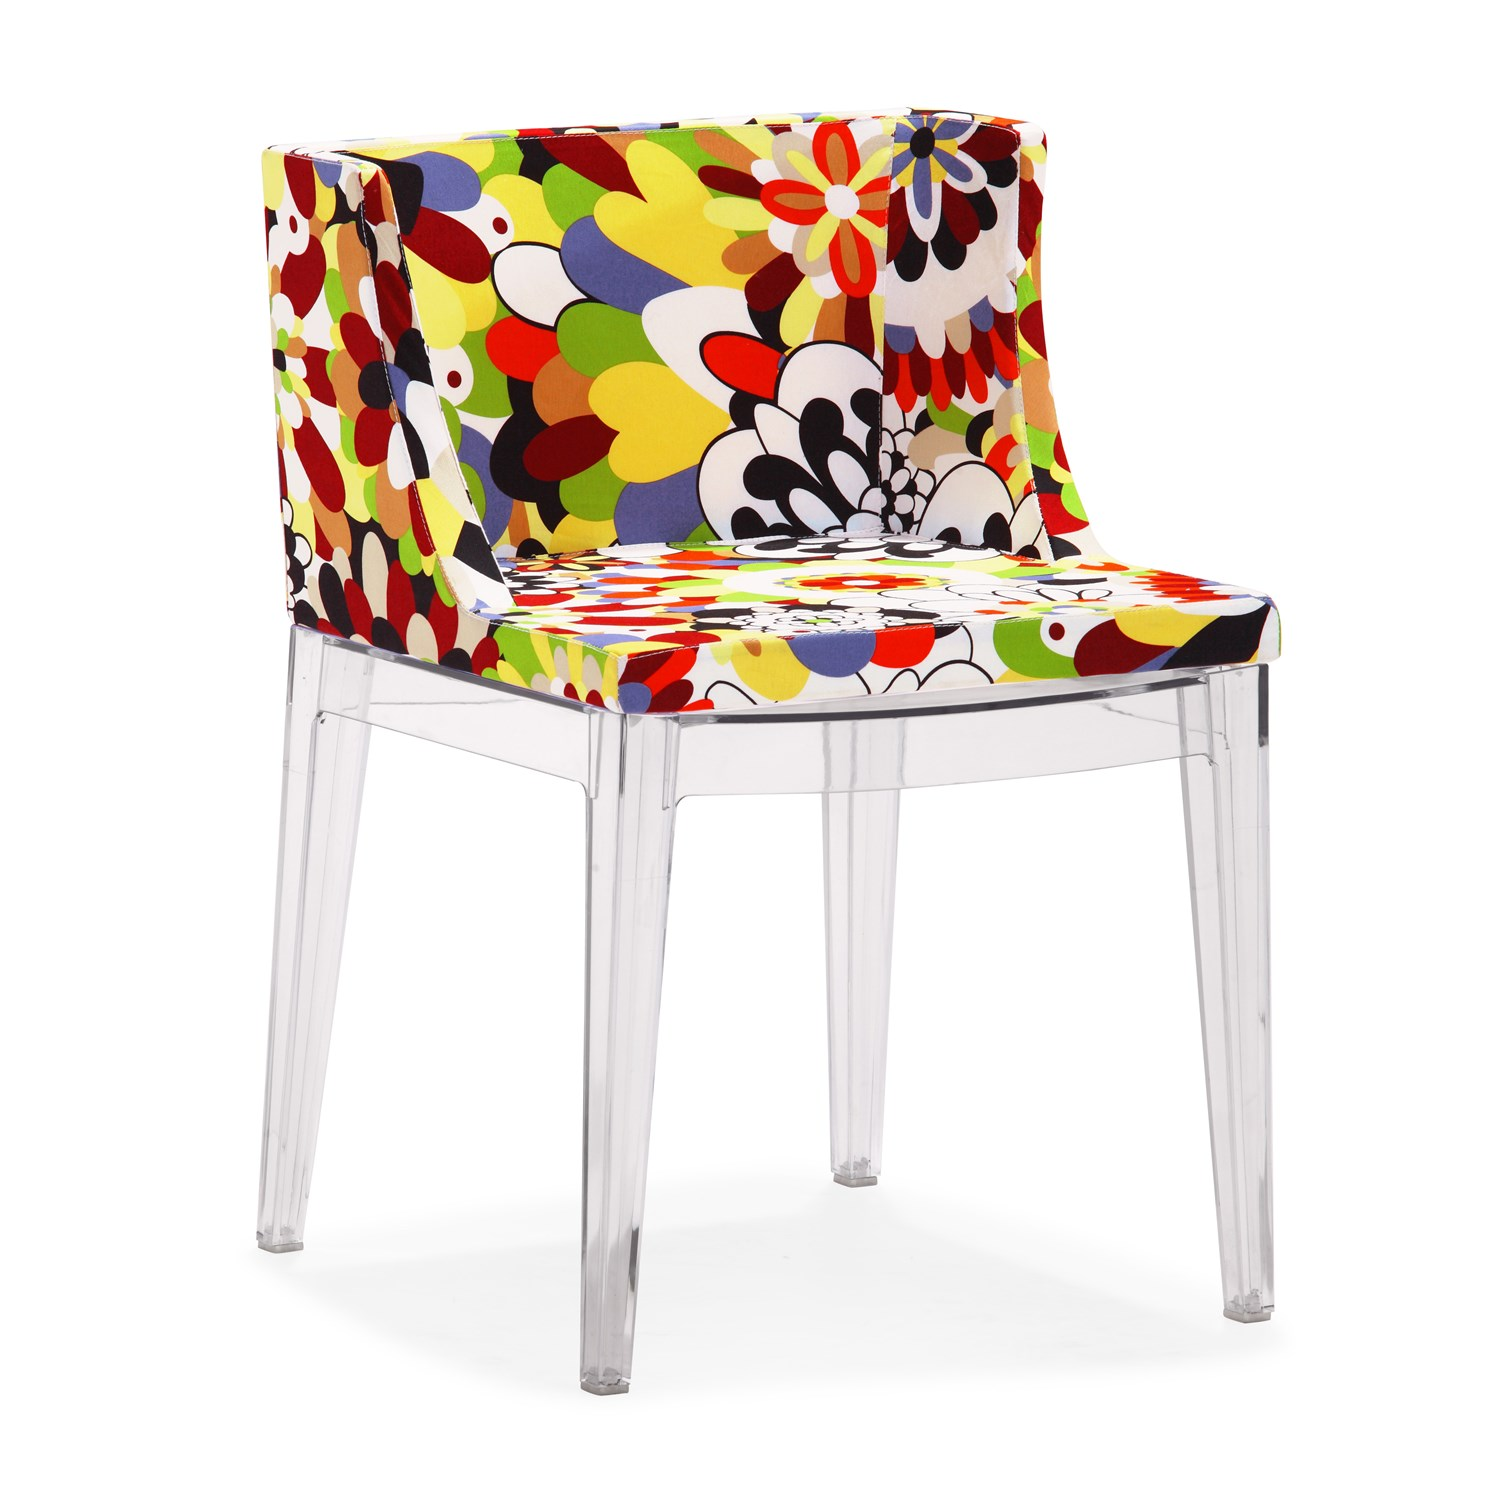 chair with floral prints